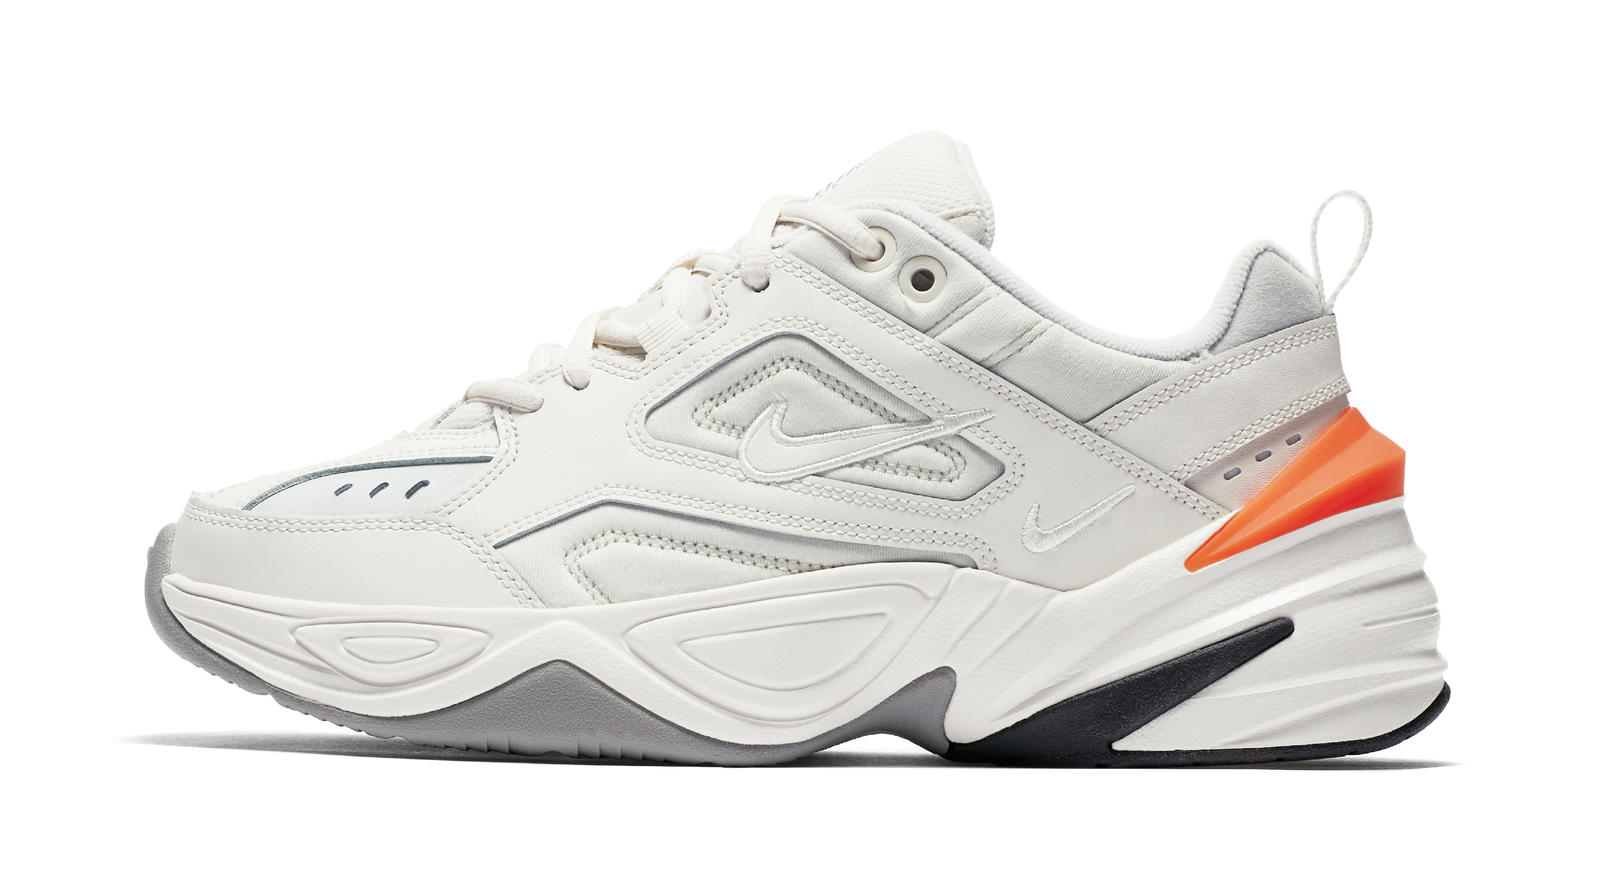 2e3973bc5a42 What s Old (and New) About the M2K Tekno  4. The Nike M2K Tekno  incorporates elements of Nike Air Monarch ...